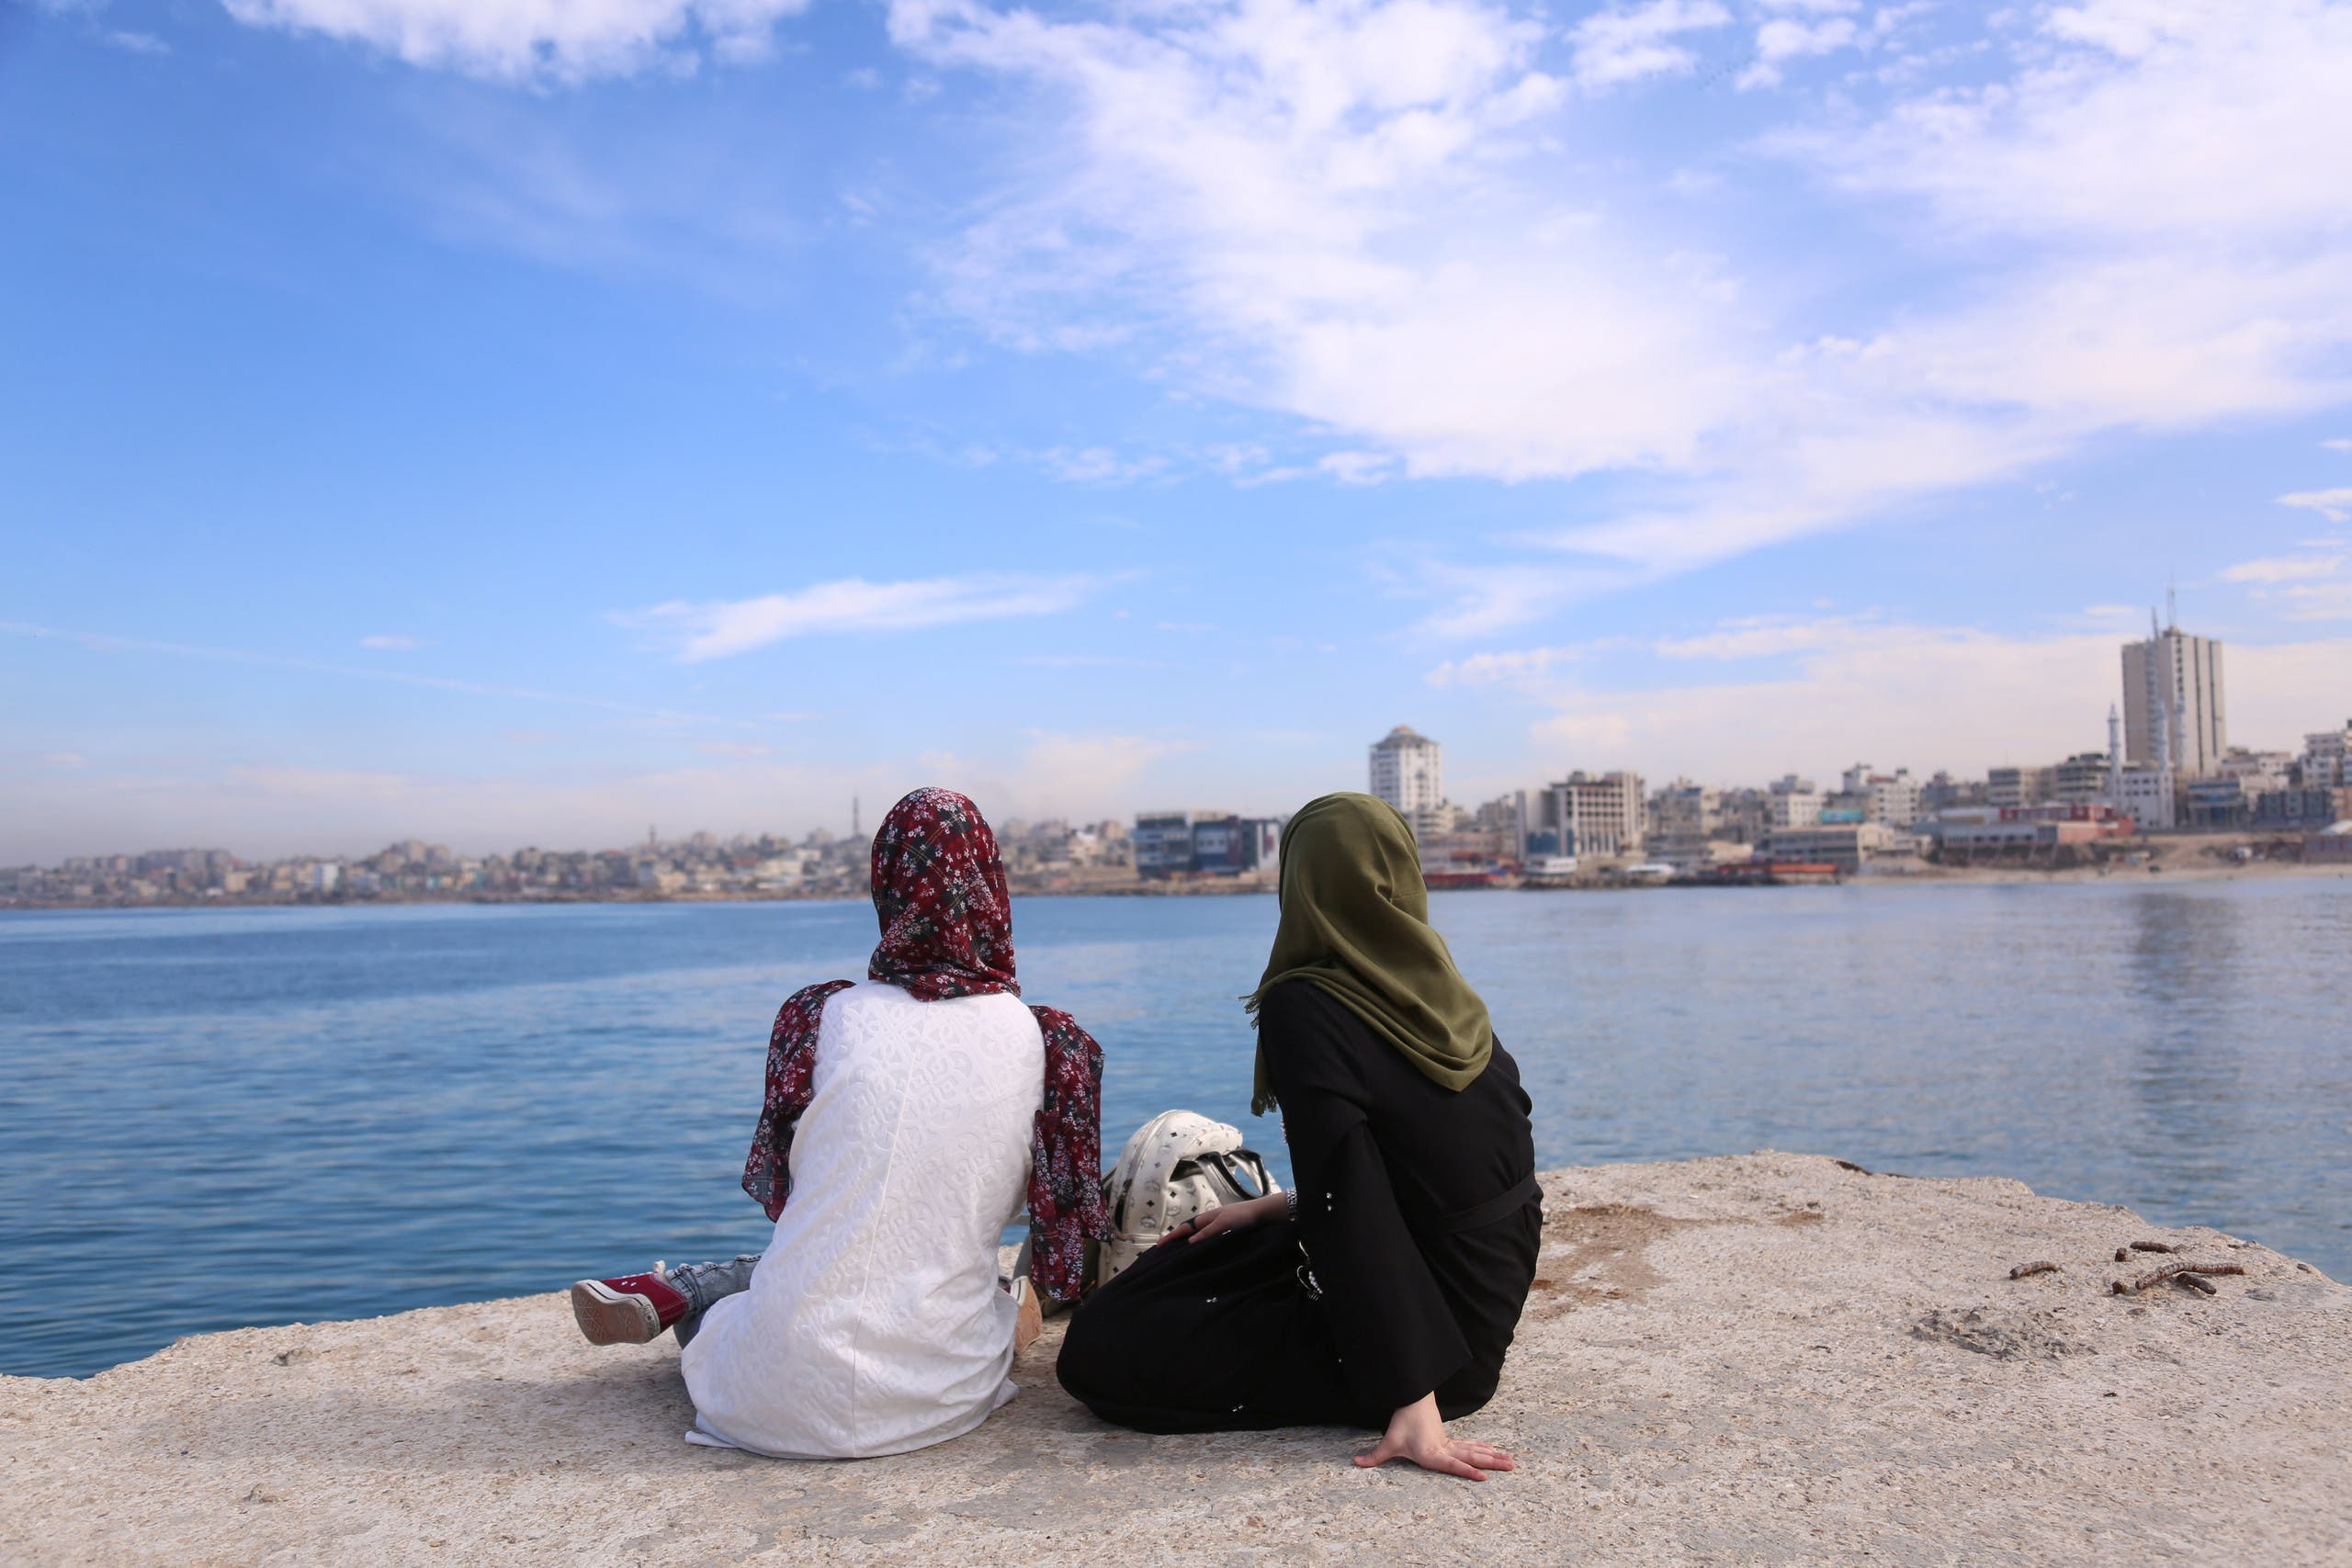 Palestinian Sara Abu Taqea (R), 23, who works in the maternity ward at Gaza's Al-Ahli hospital, and her friend spend time at the seaport in Gaza City (reuters)